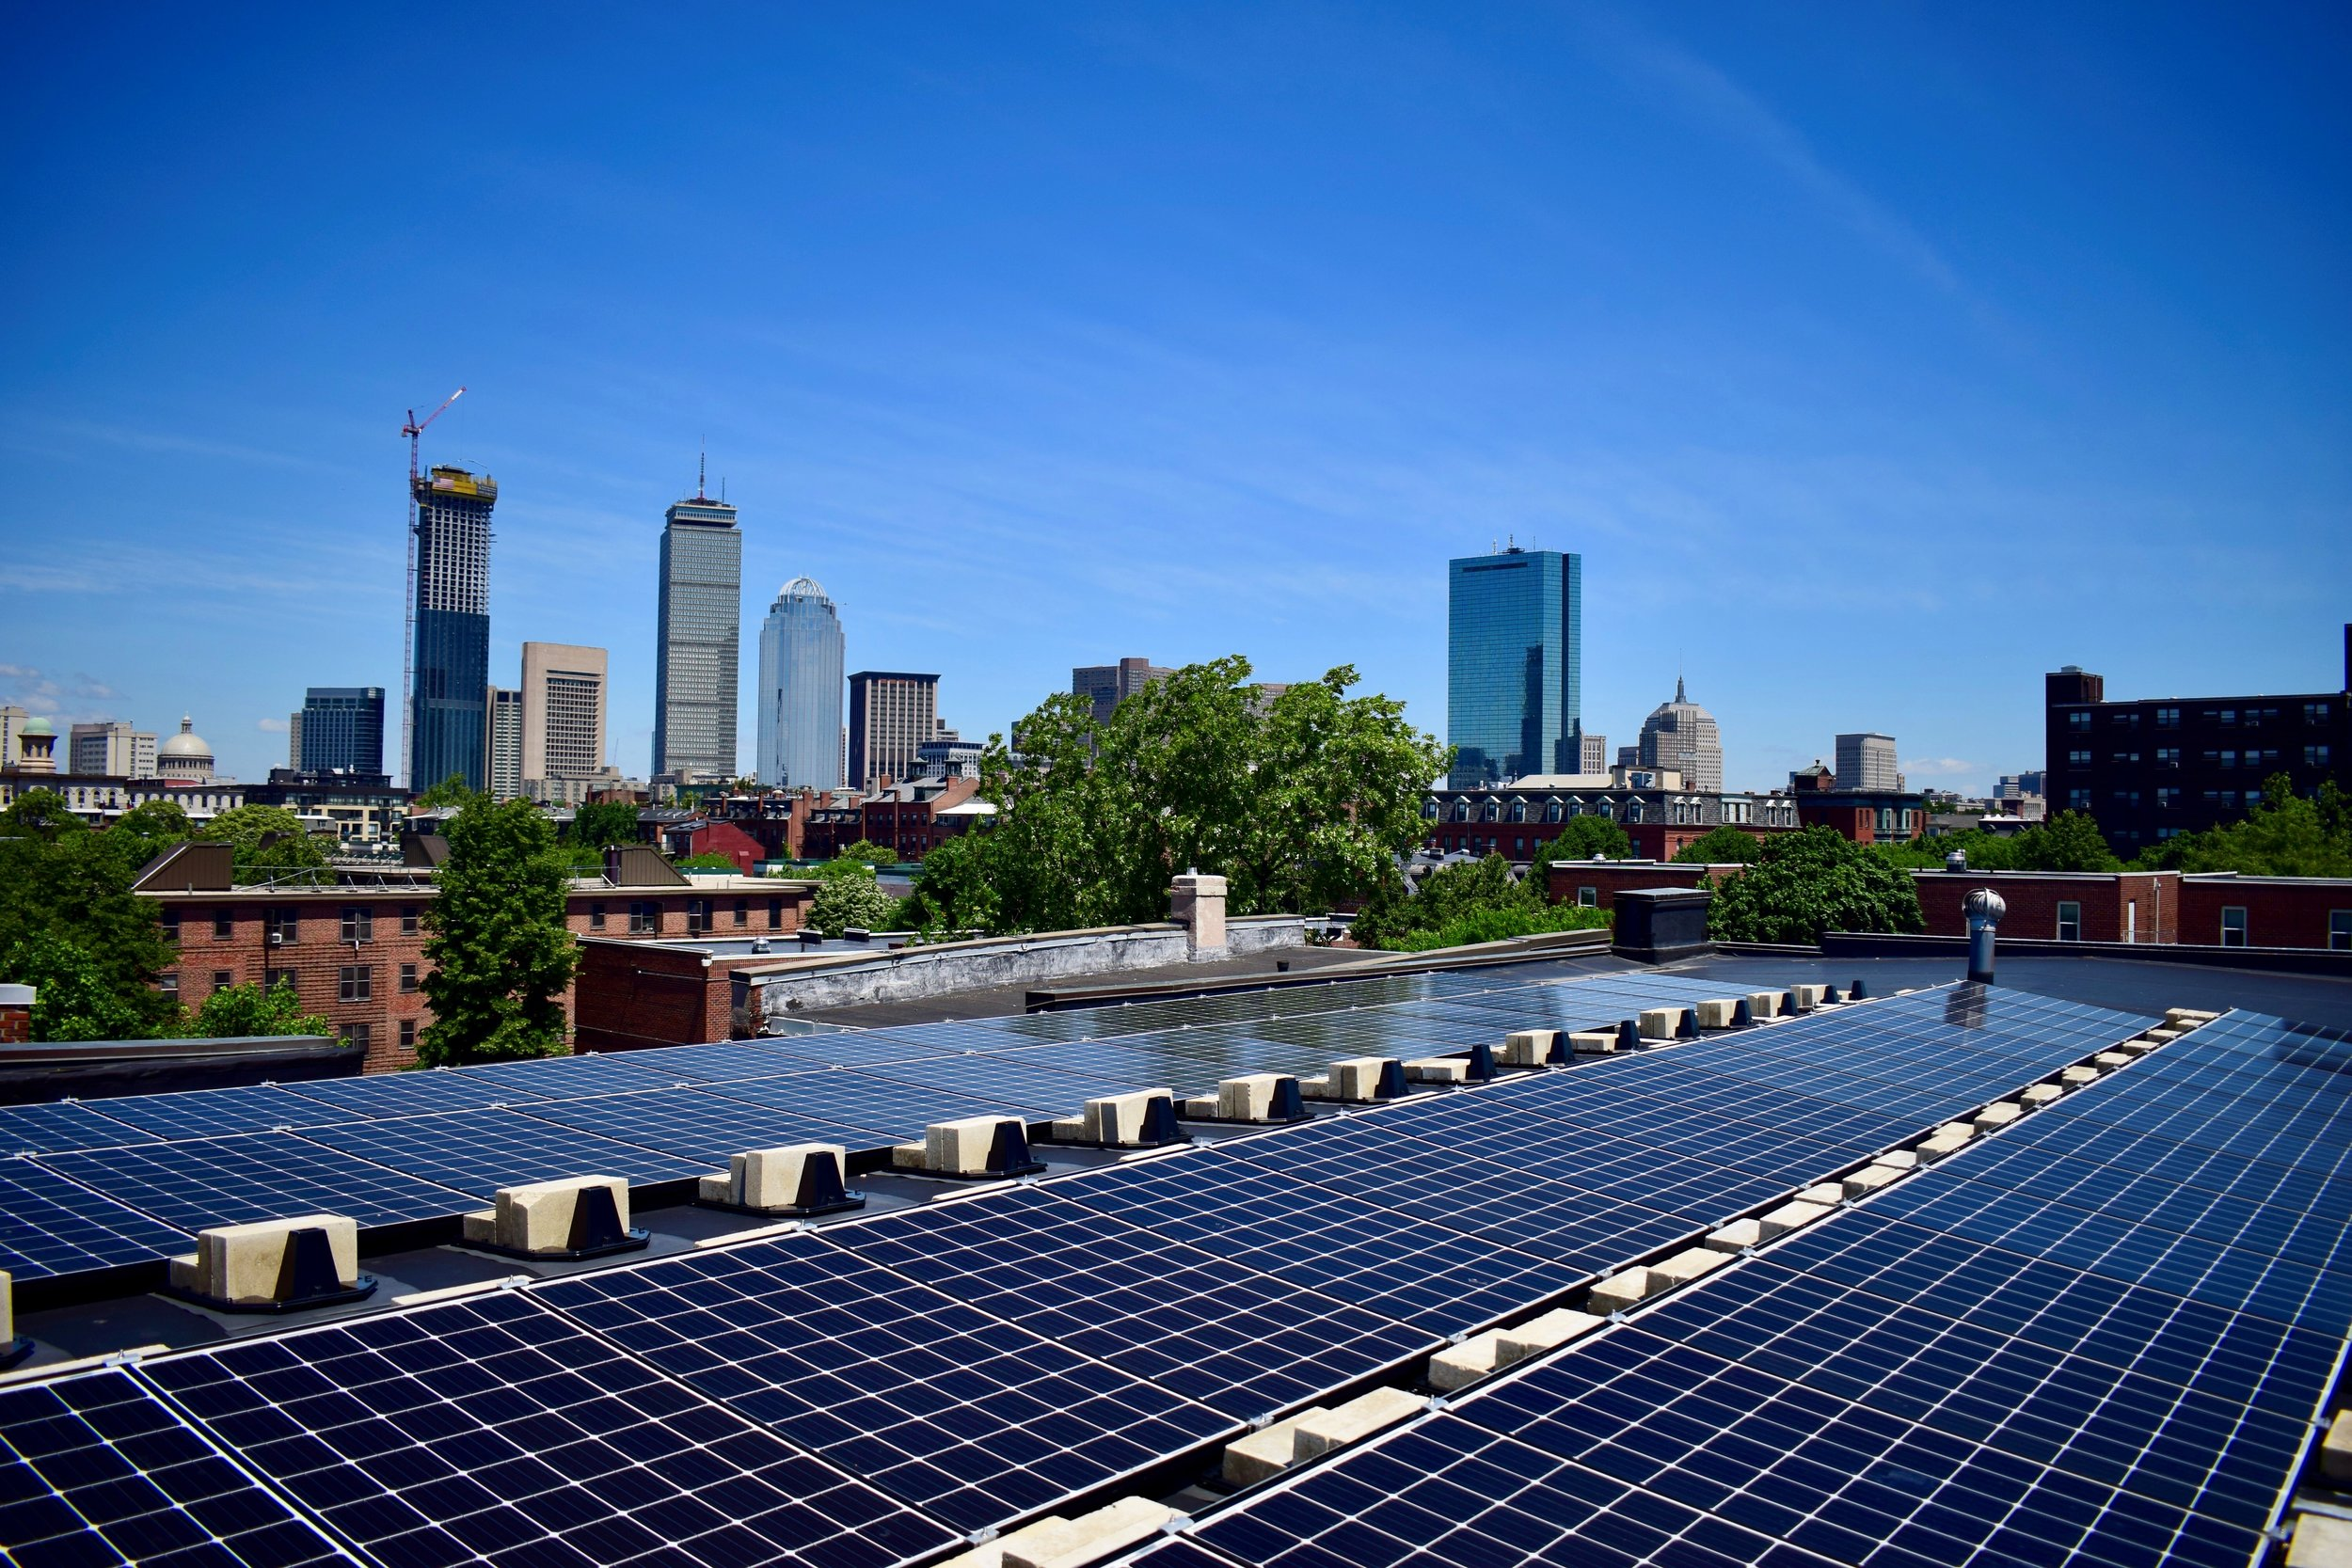 The view from the roof of Church of St. Augustine and St. Martin in Roxbury, where solar panels provide clean energy and reduced electricity costs. Photo by Cody Eaton.